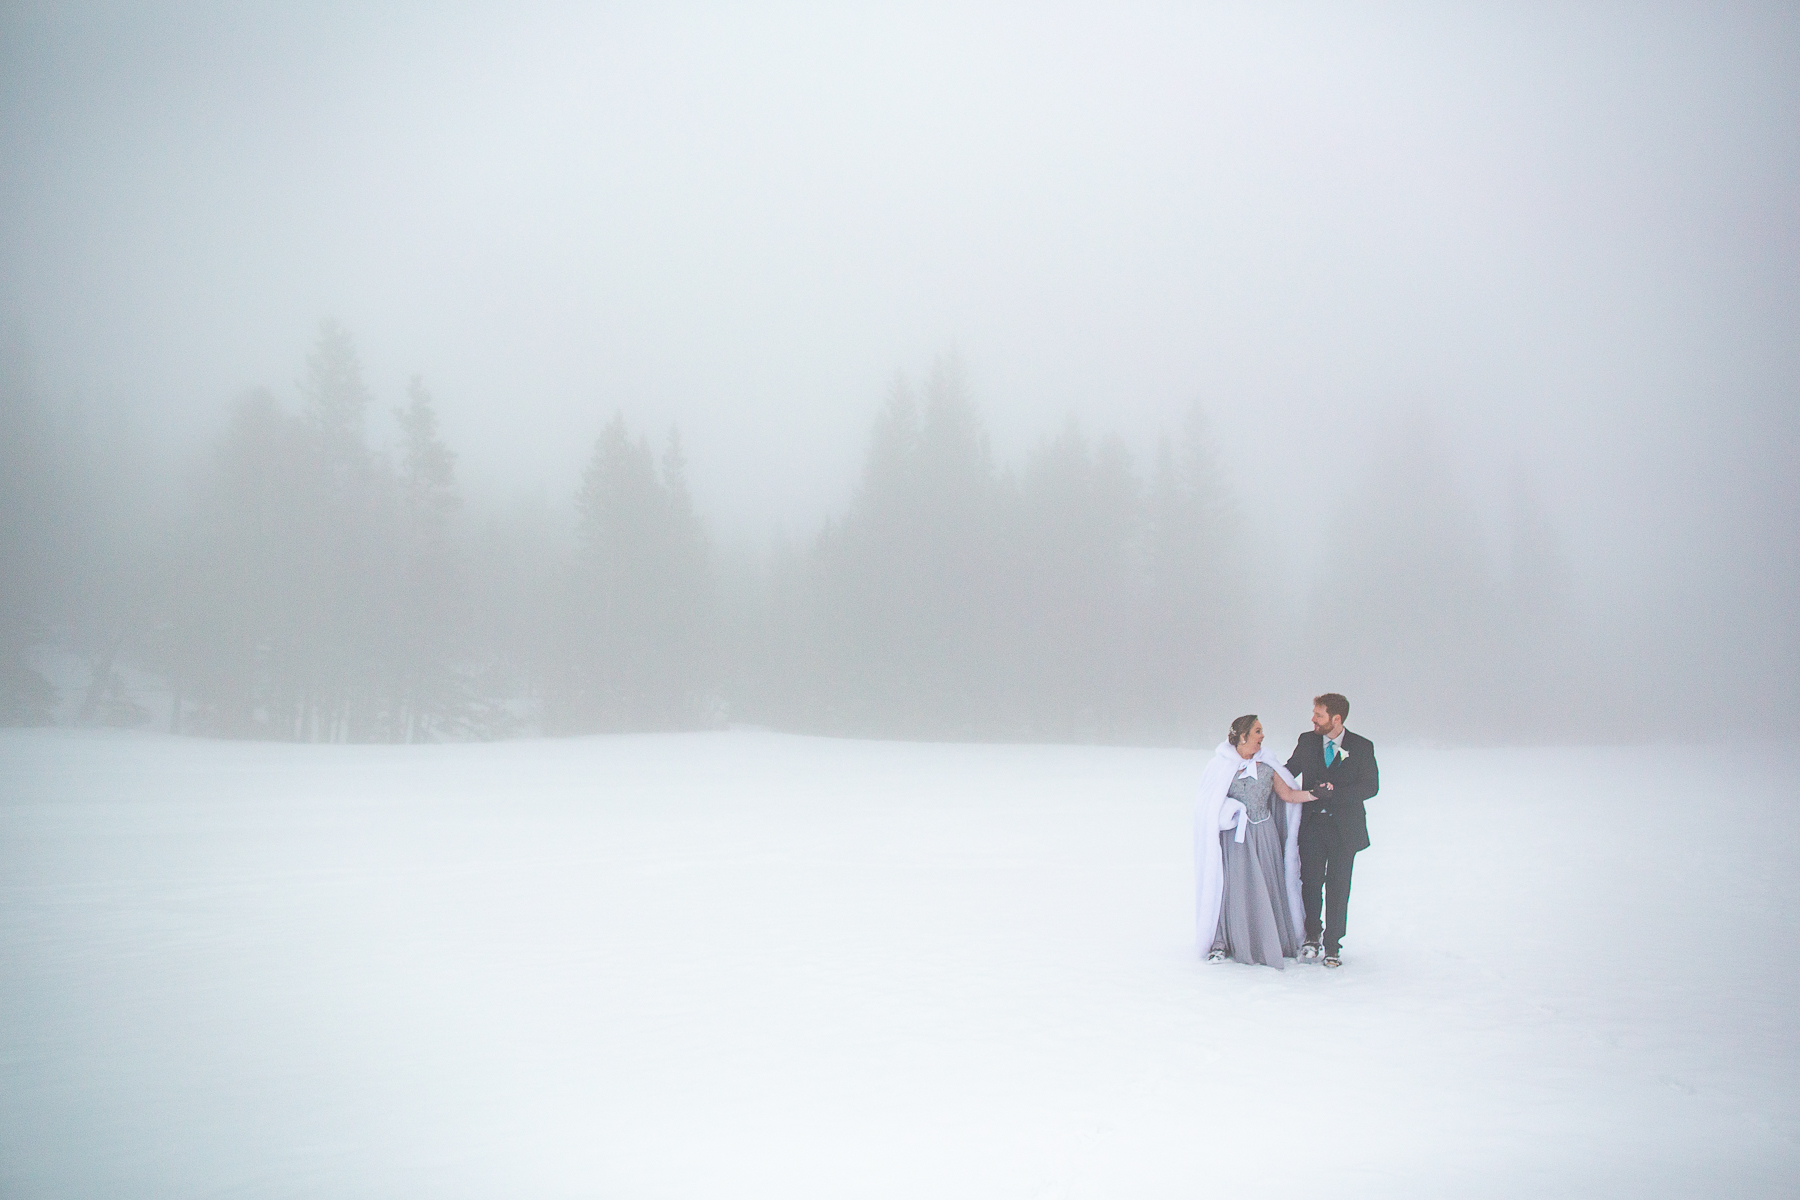 Bear Lake Wedding Shoot at Rocky Mountain National   The bride and groom walk across the fogged-in snowy lake